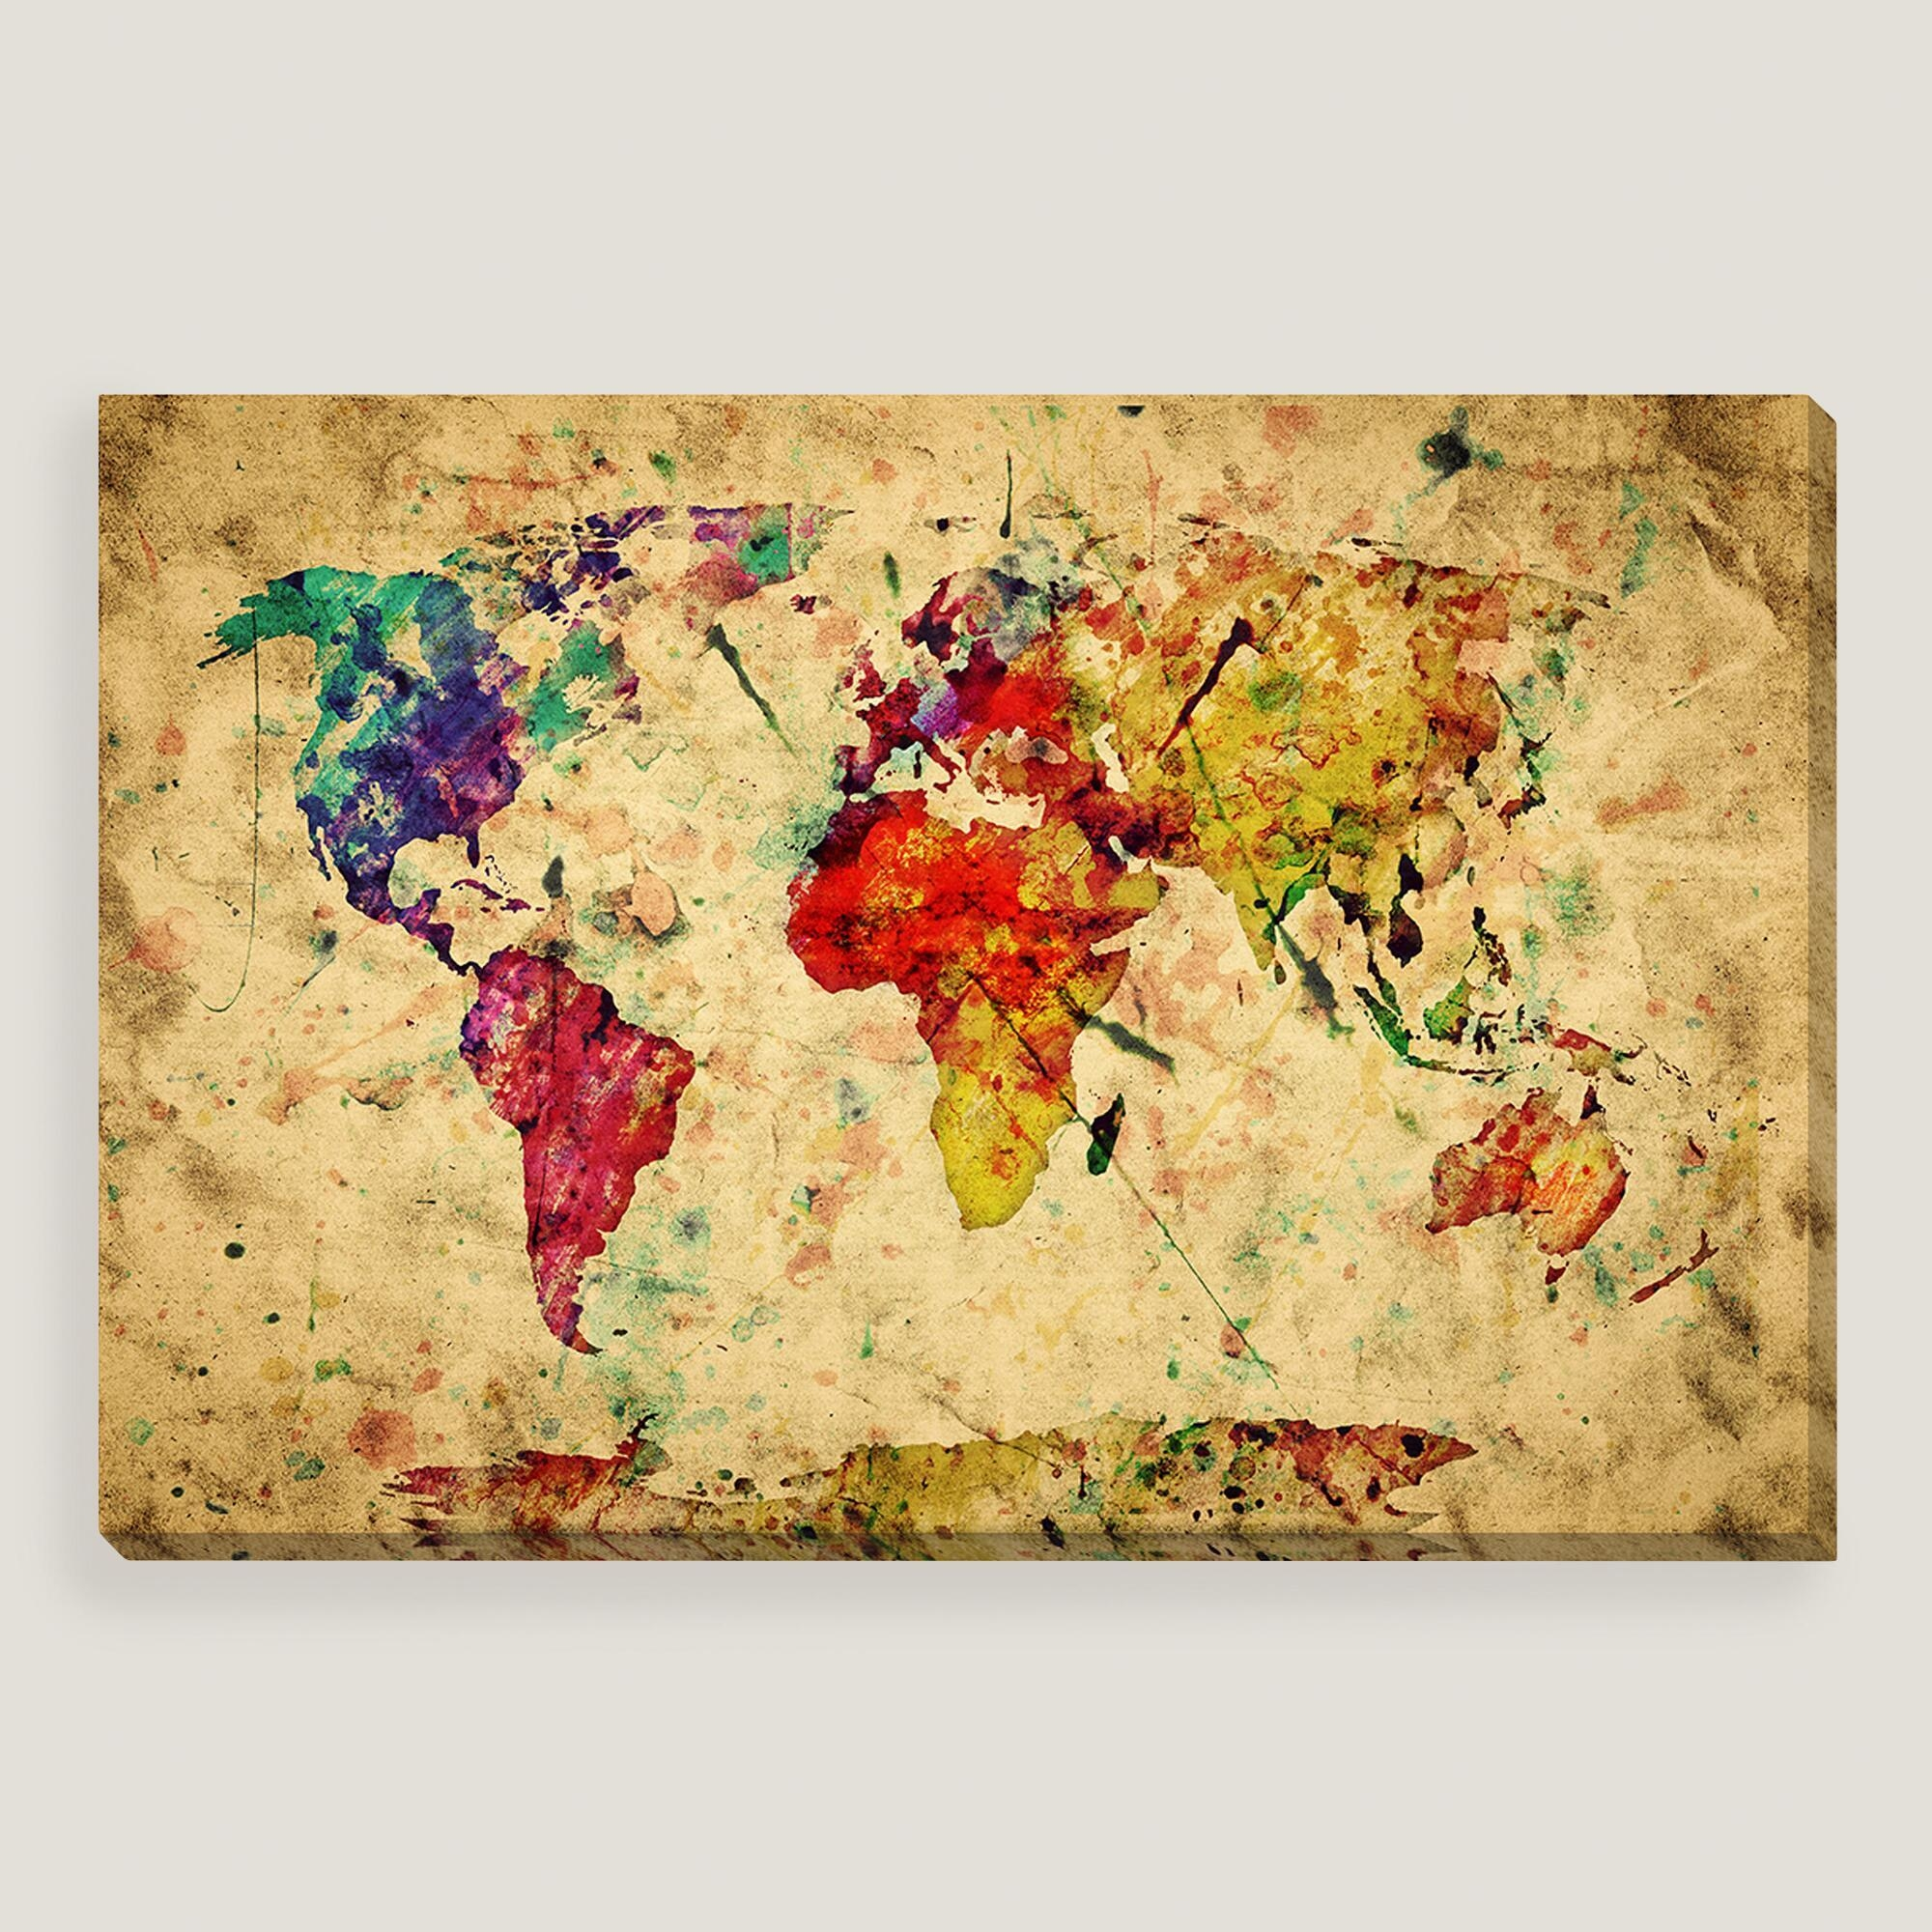 Wall Art Design Ideas: Customize Framed Vintage World Map Wall Art In Framed World Map Wall Art (View 4 of 20)